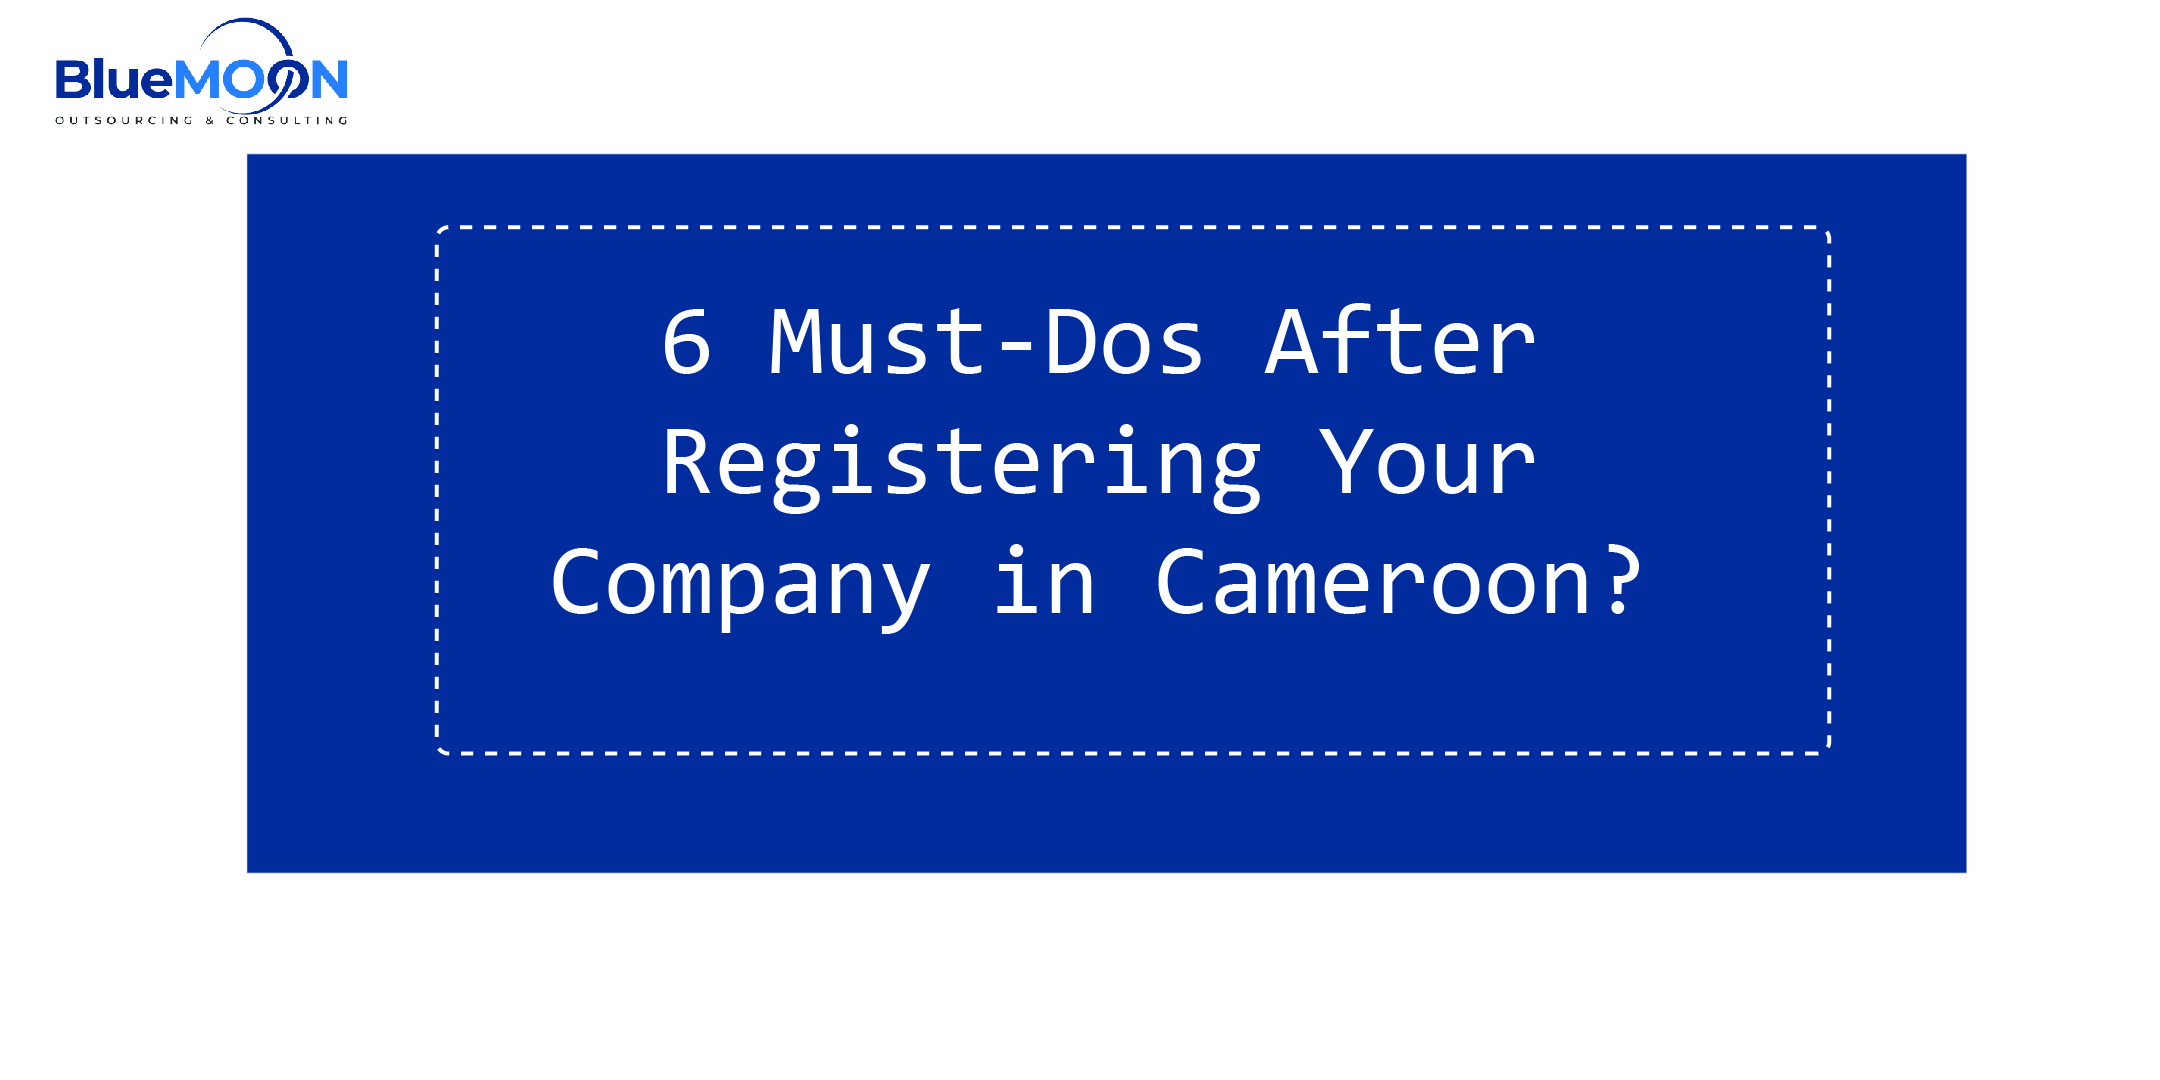 What to do After registering a company in Cameroon